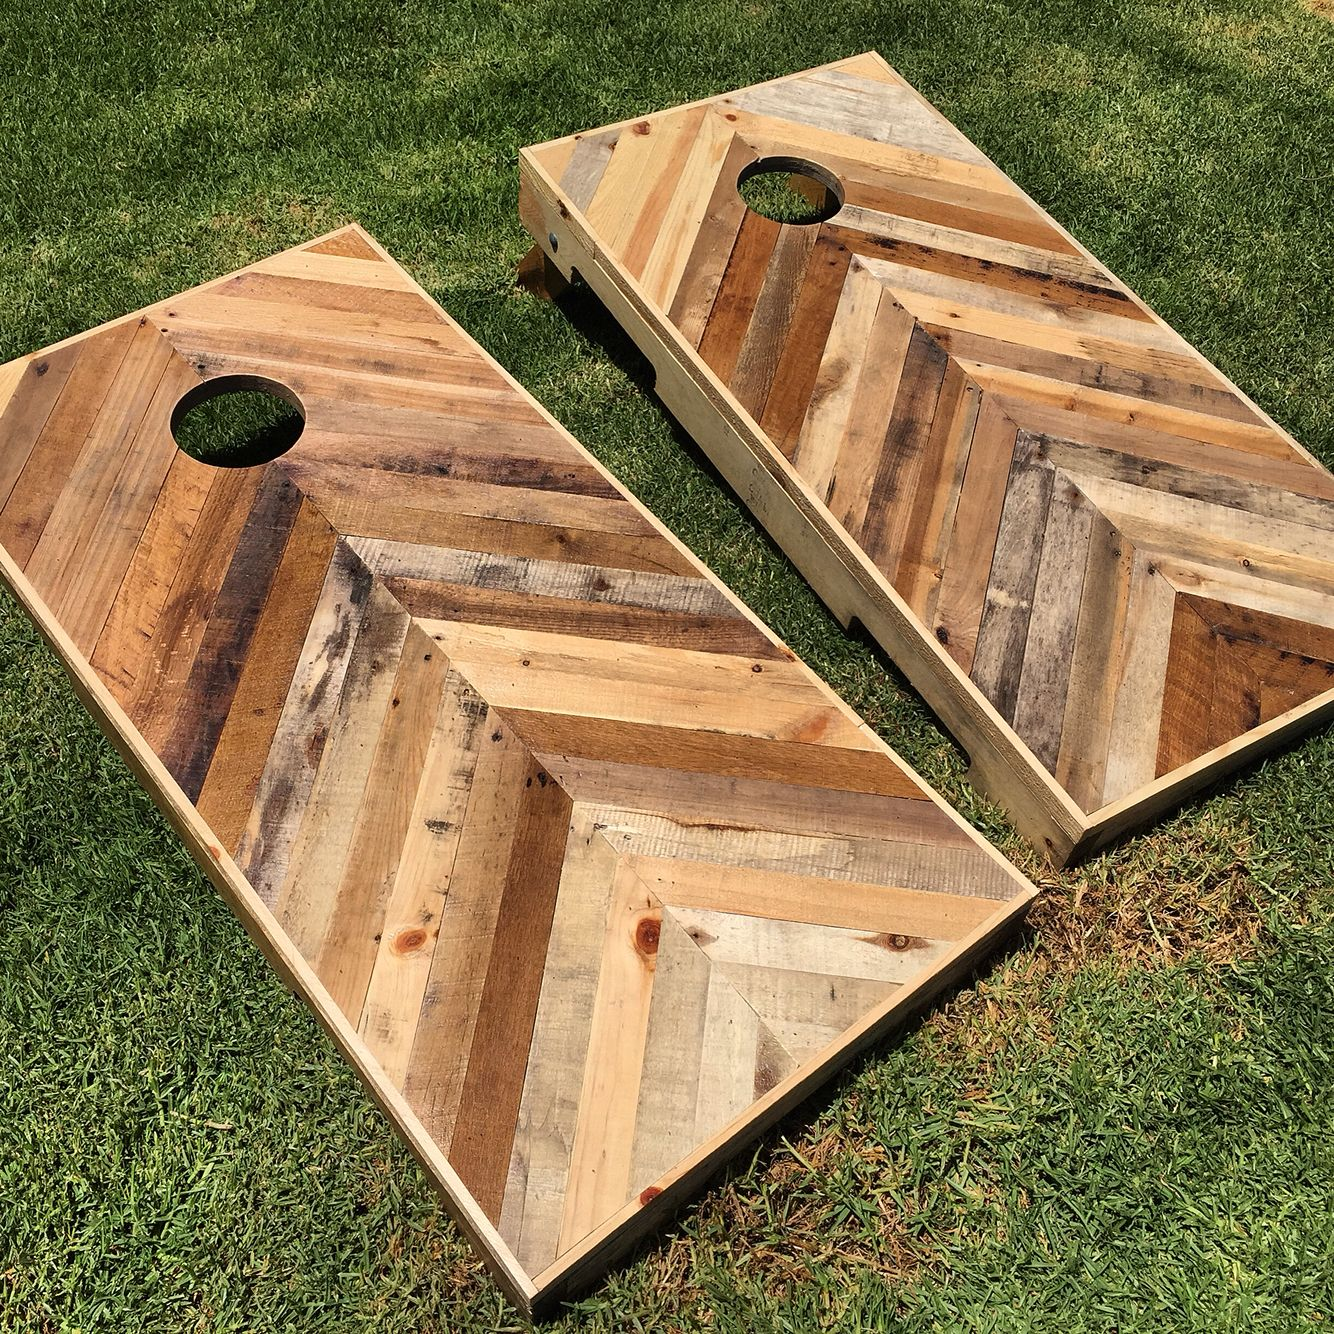 Diy pallet chevron cornhole boards follow me on instagram for Pallet ideas